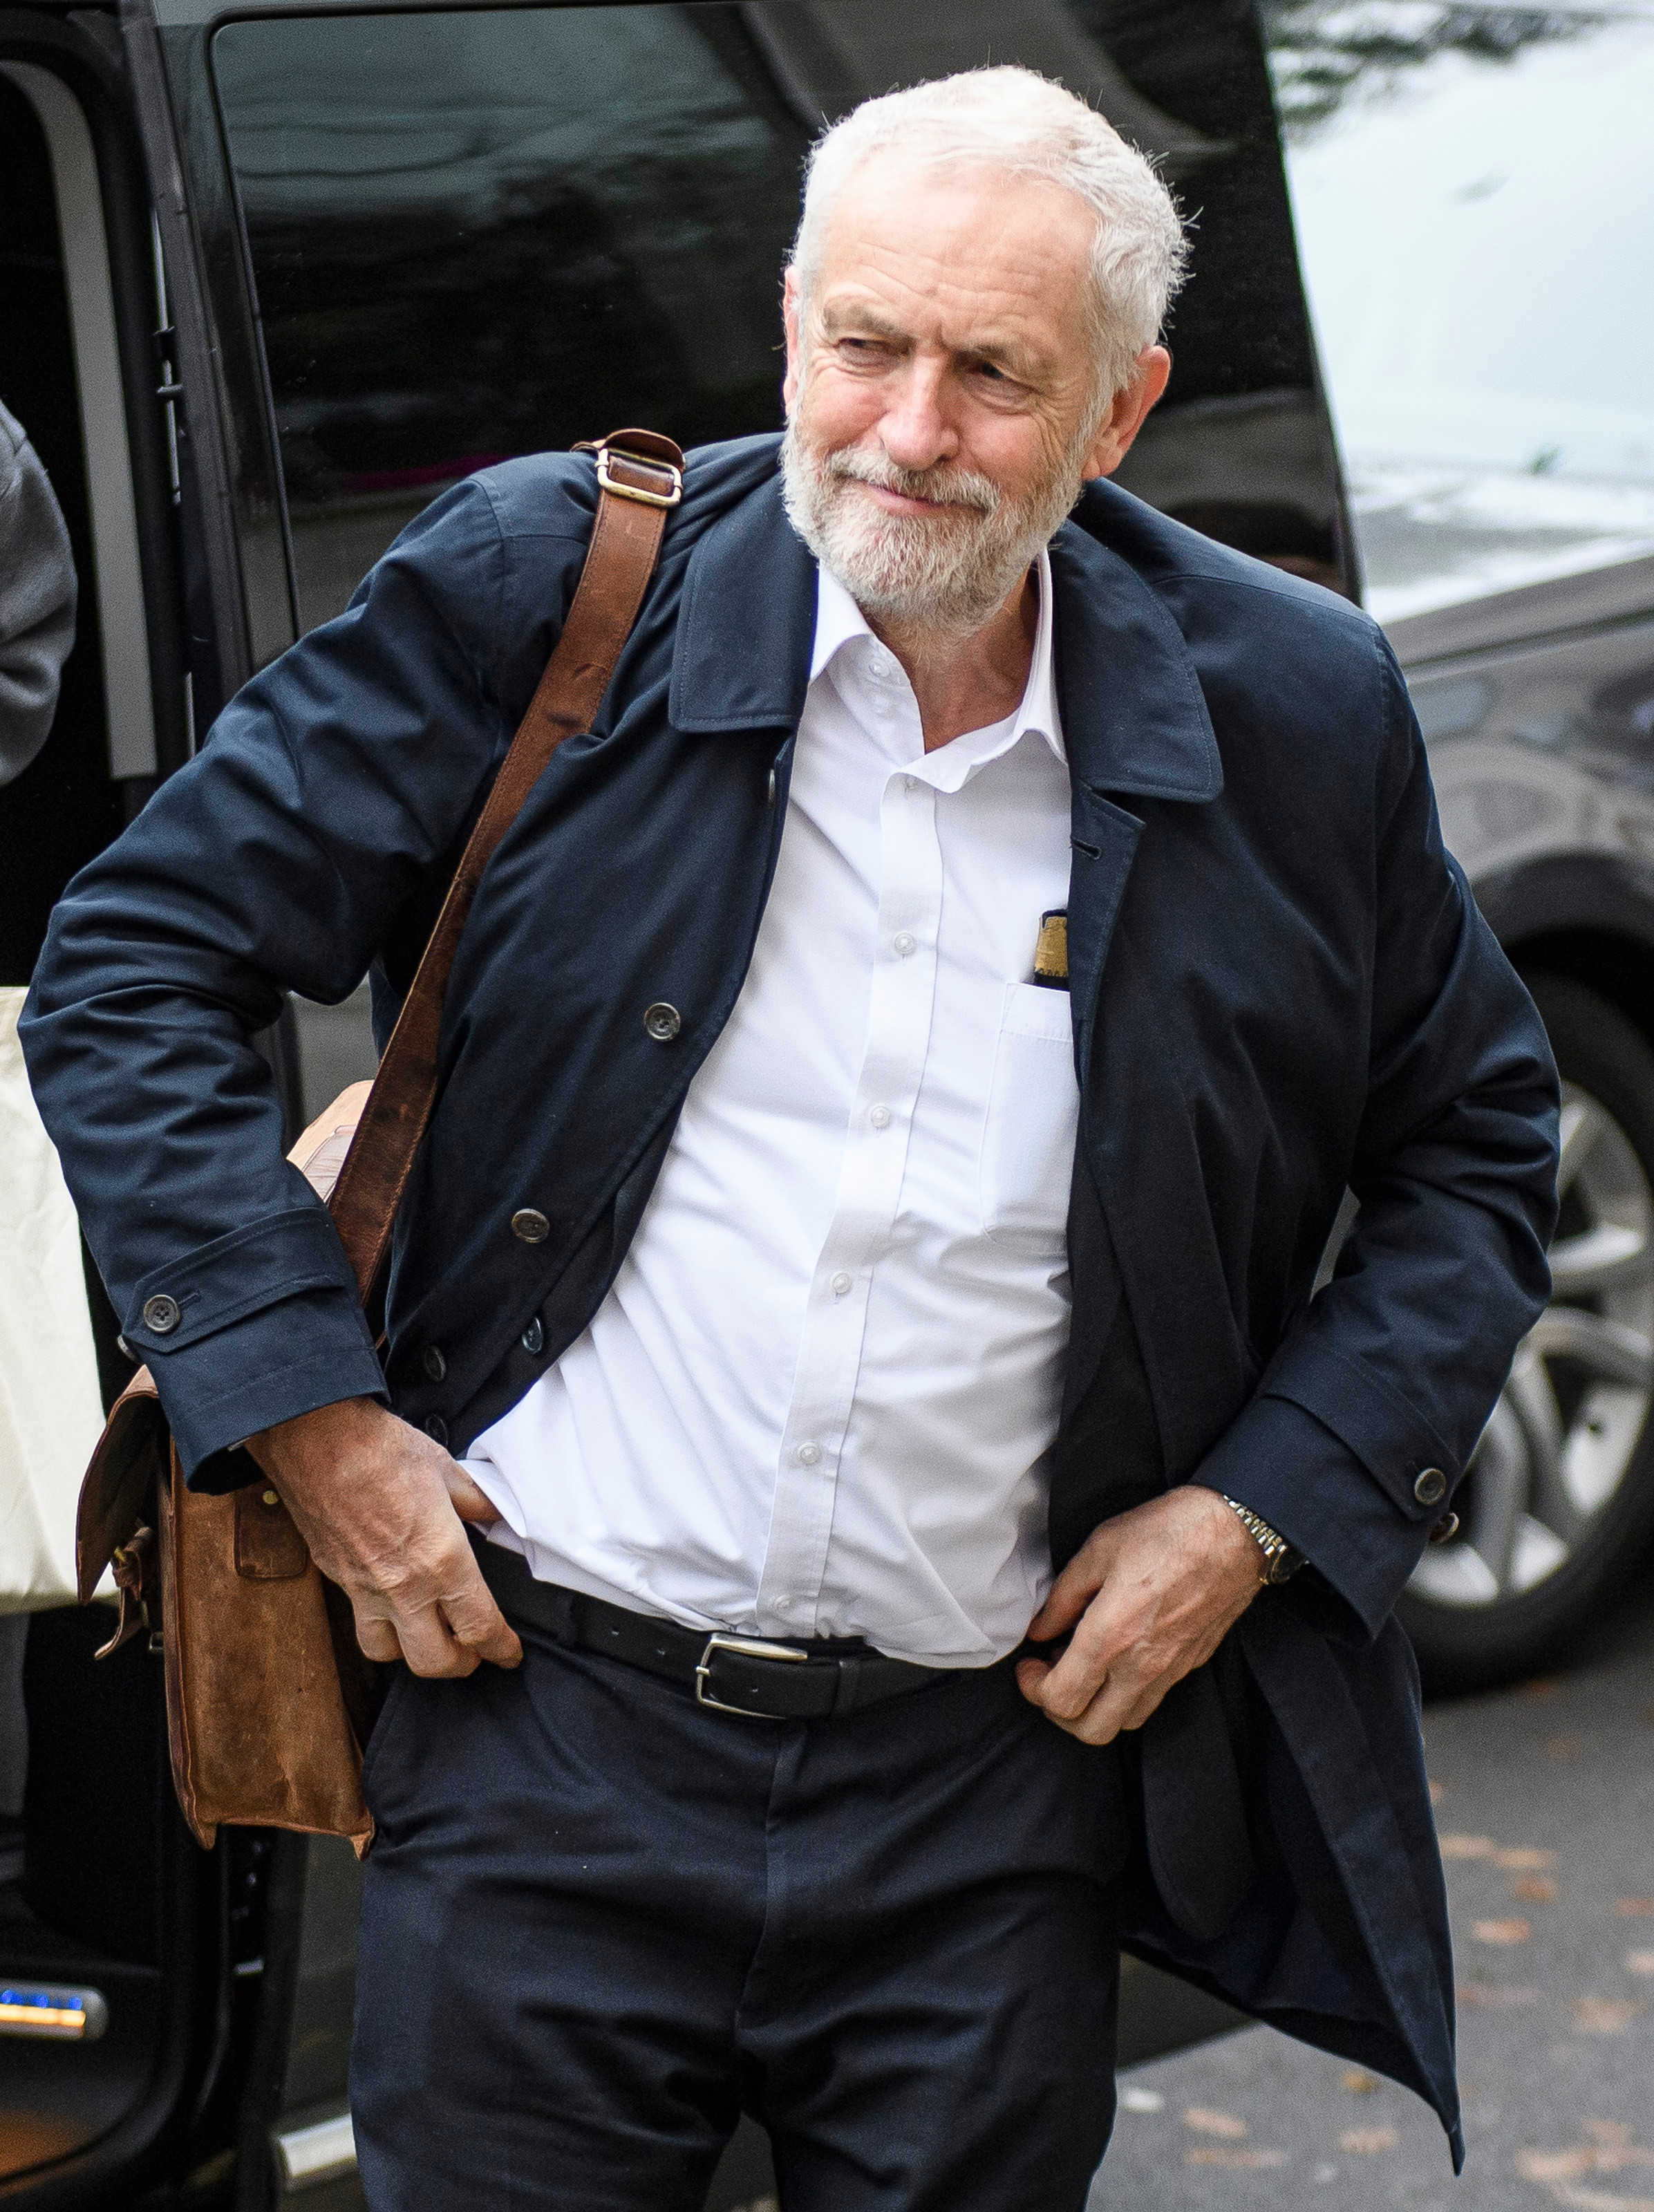 Jeremy Corbyn's judgment has been called into question throughout his political career